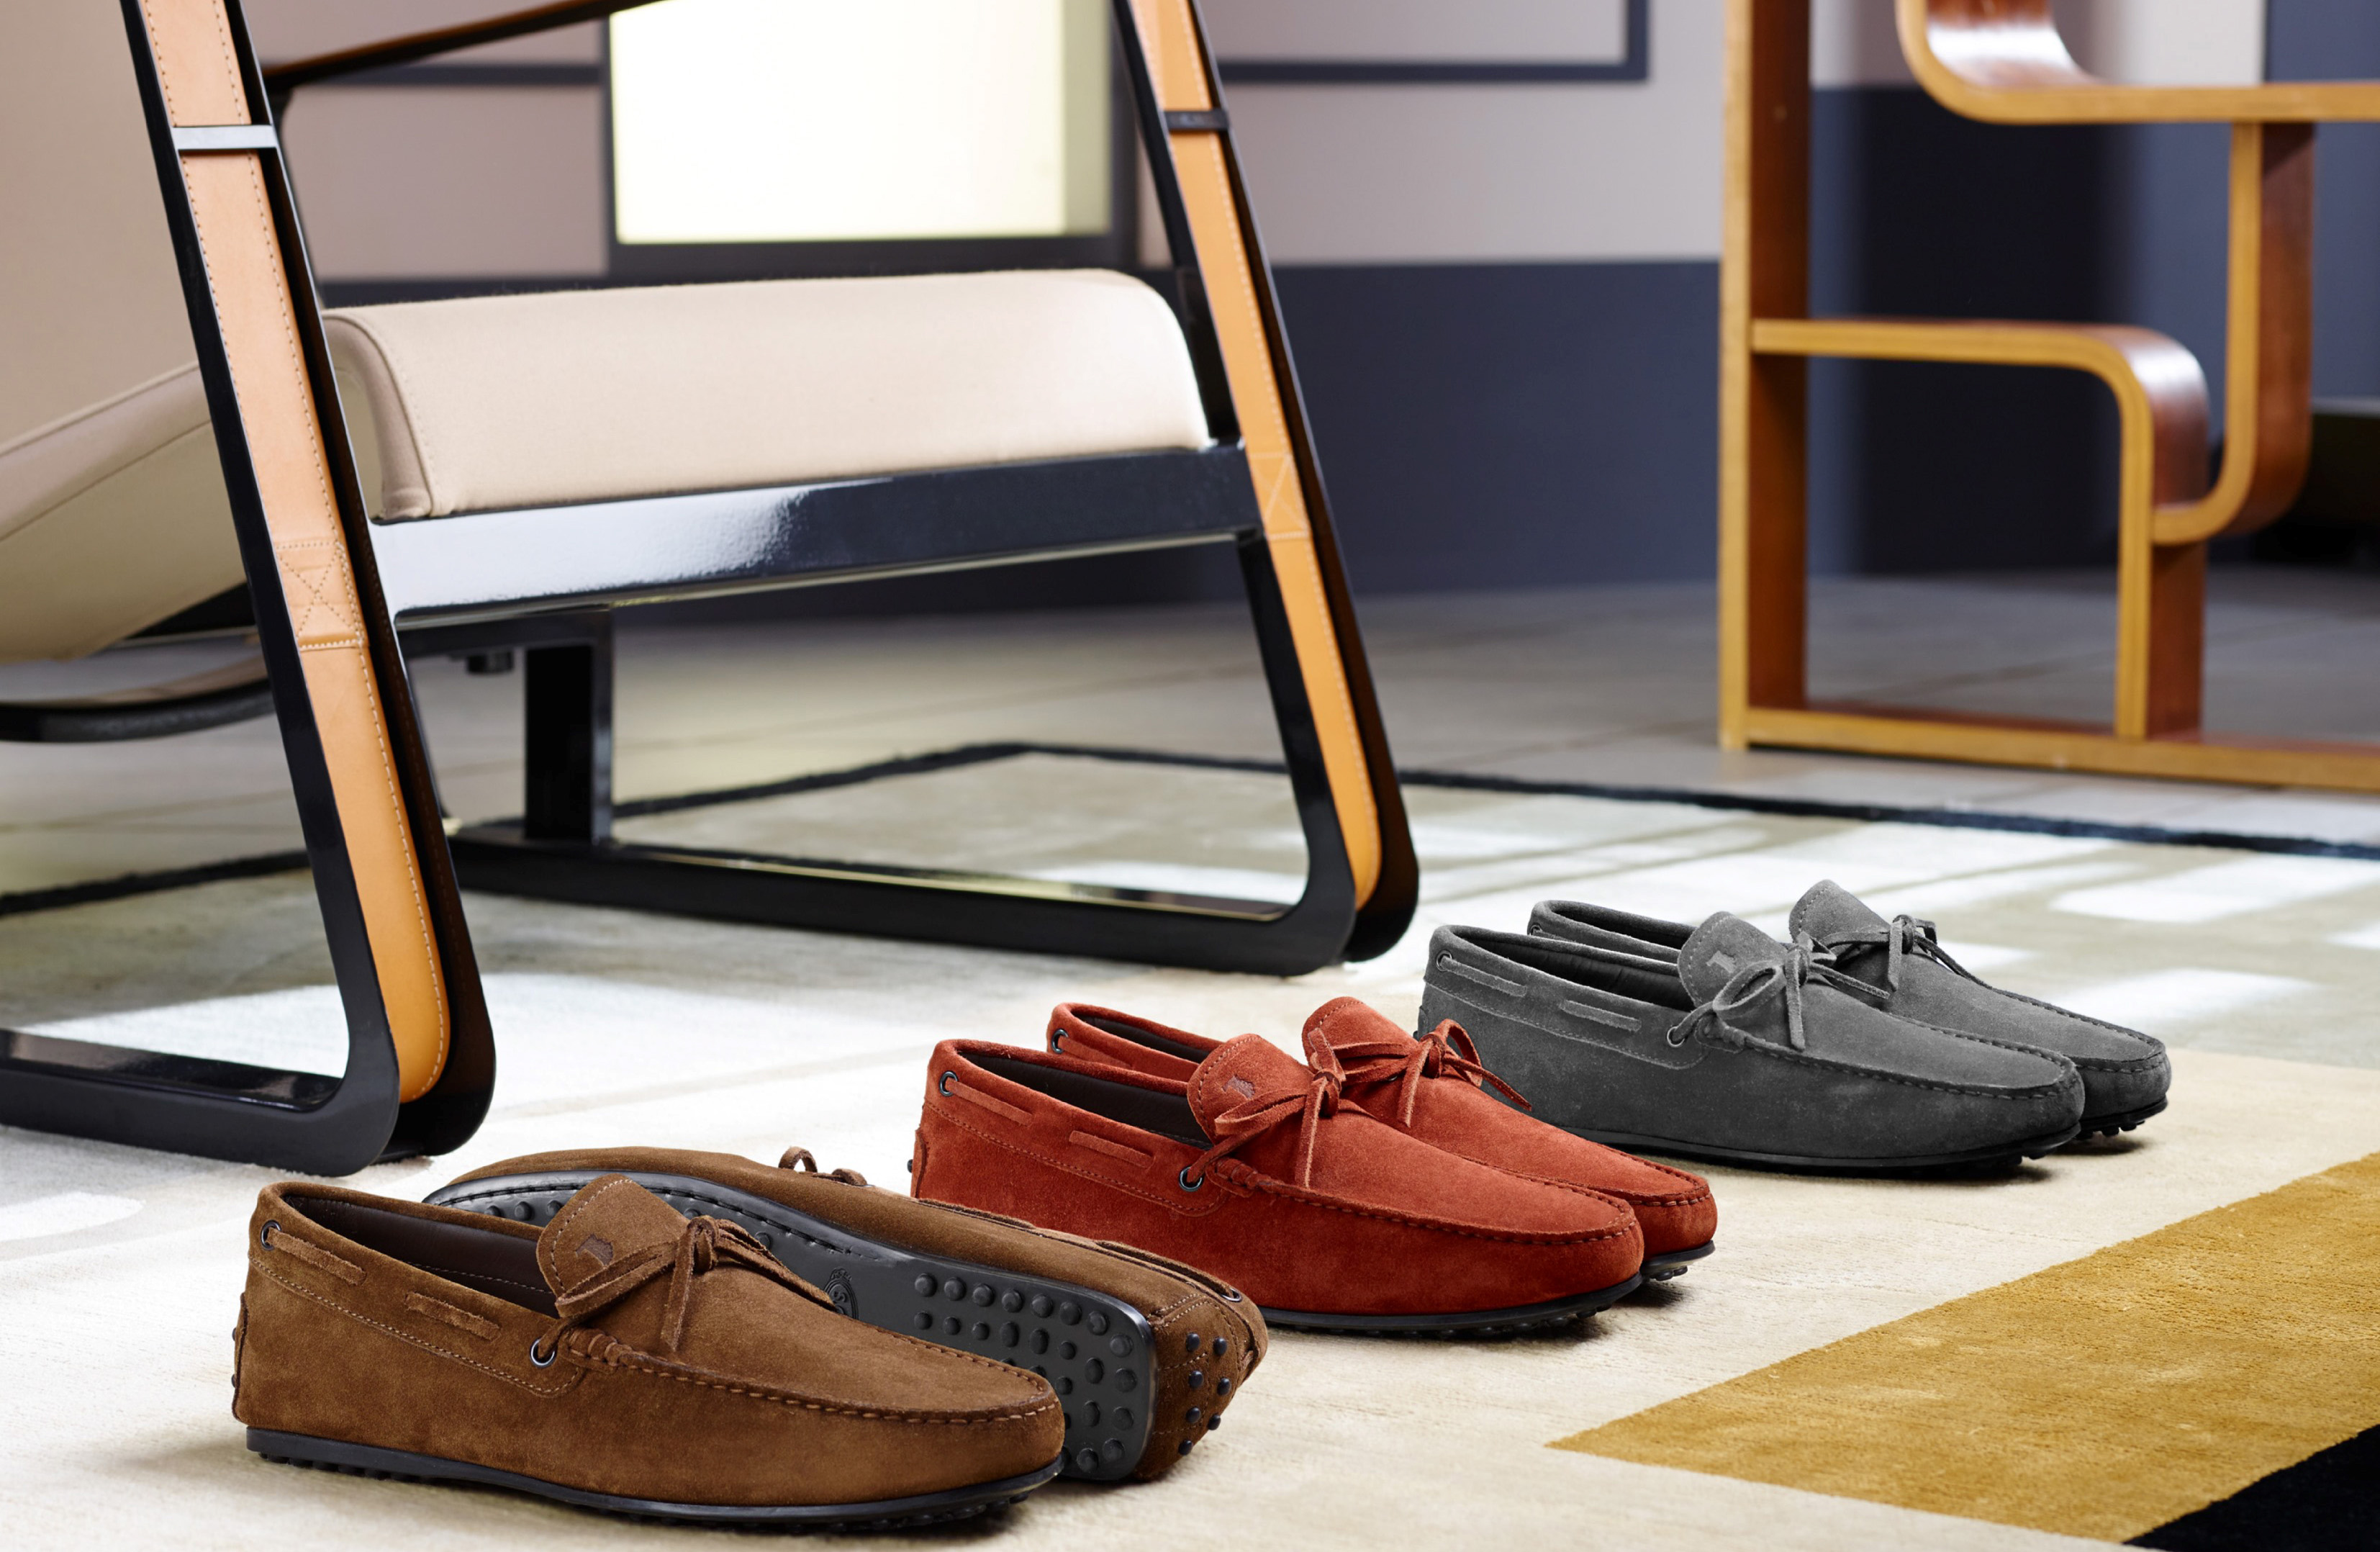 846a5cb8c Introducing Tod's new City Gommino collection | Global Blue